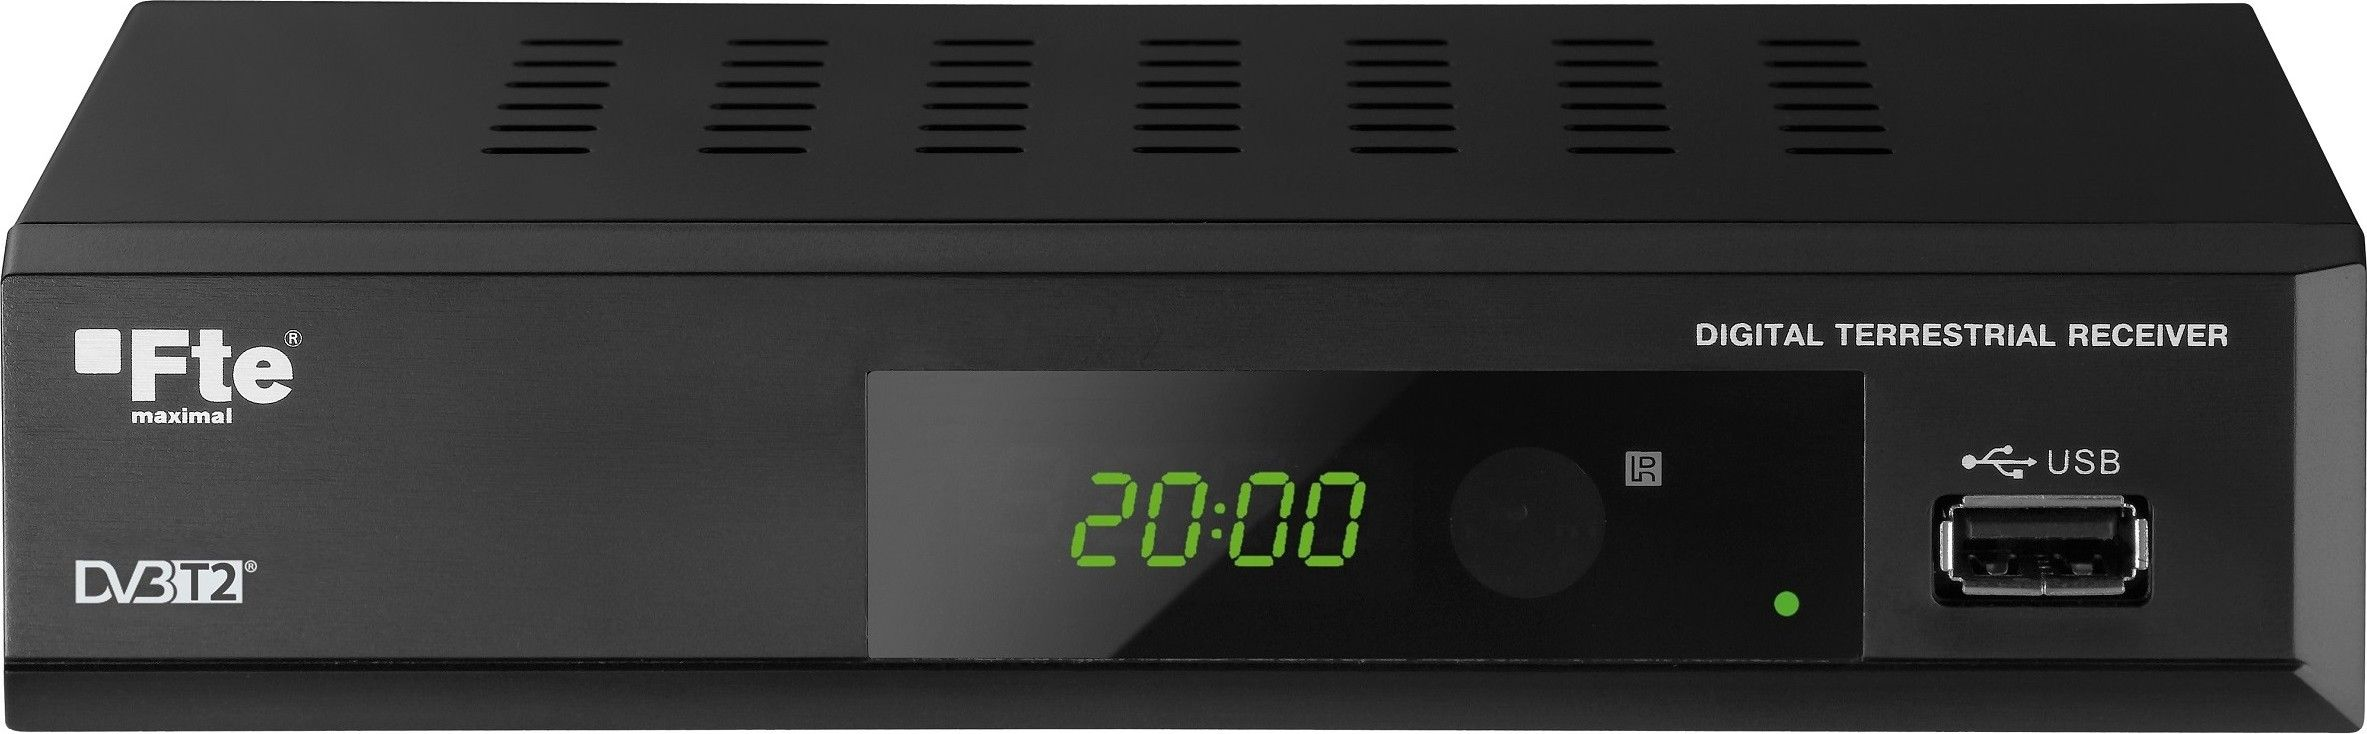 Buy Fte Maxt200hd Dvb T2 Full Hd Mpeg4 Receiver At Bestbuycyprus Com For 48 00 With Free Delivery Dvb T2 Receiver Cool Things To Buy